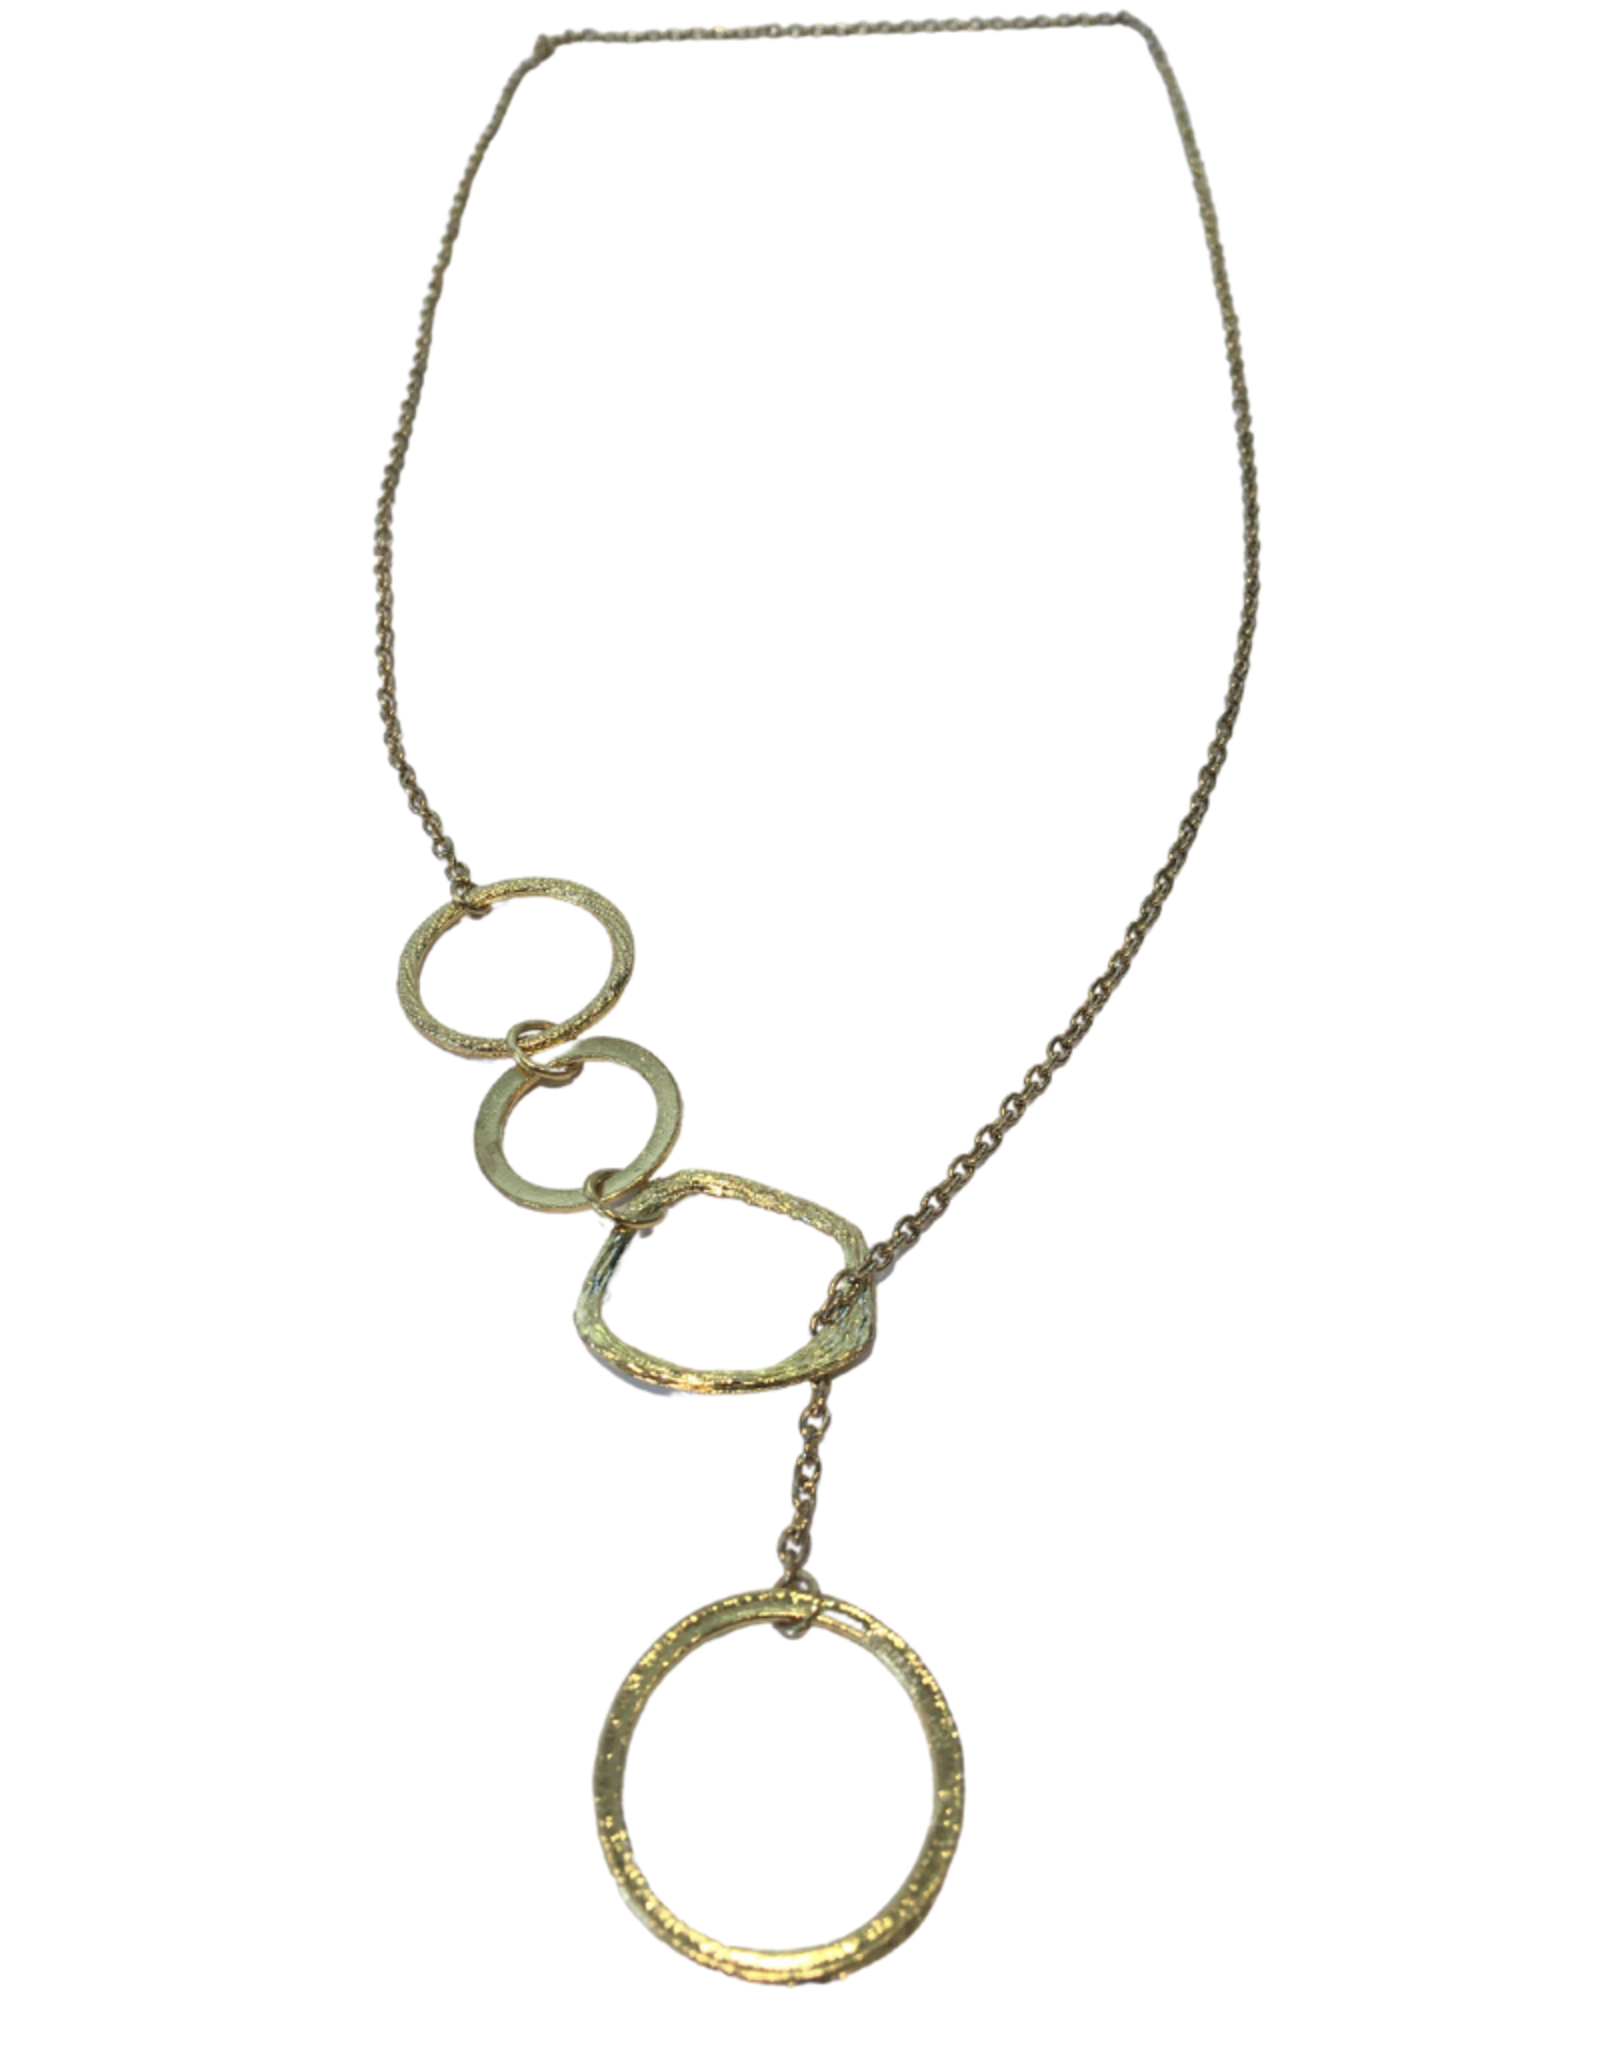 Gold Necklace with Rings